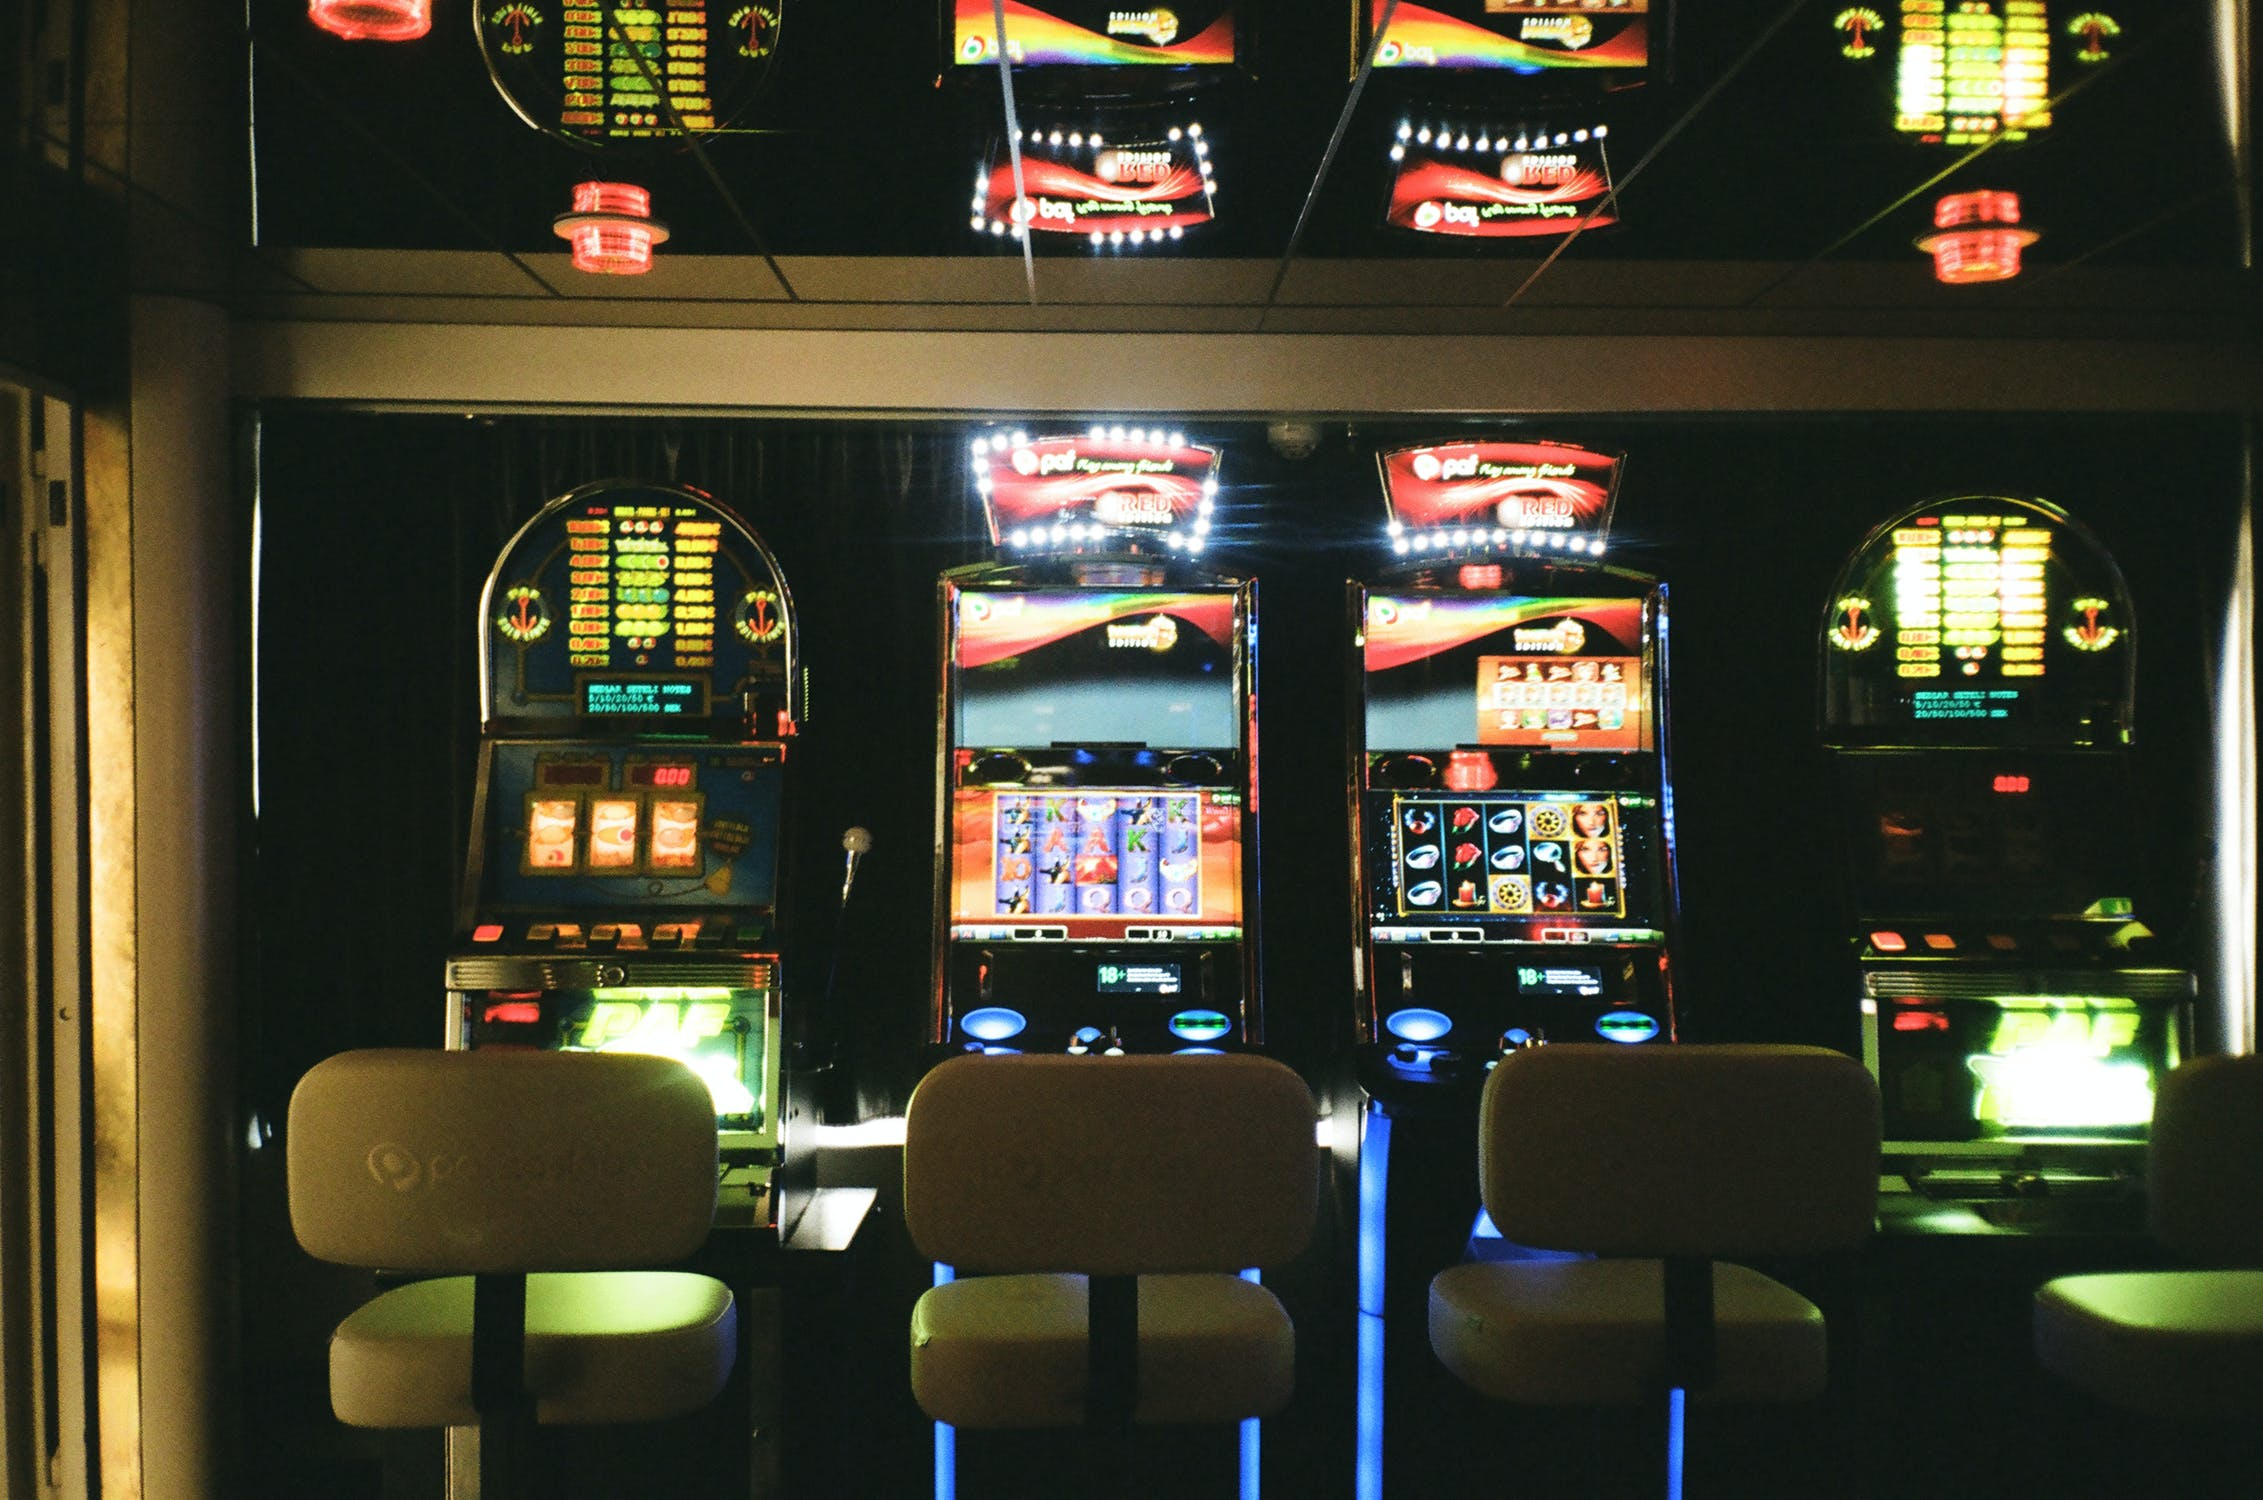 Bitcoin Slots At Brick And Mortar Casinos